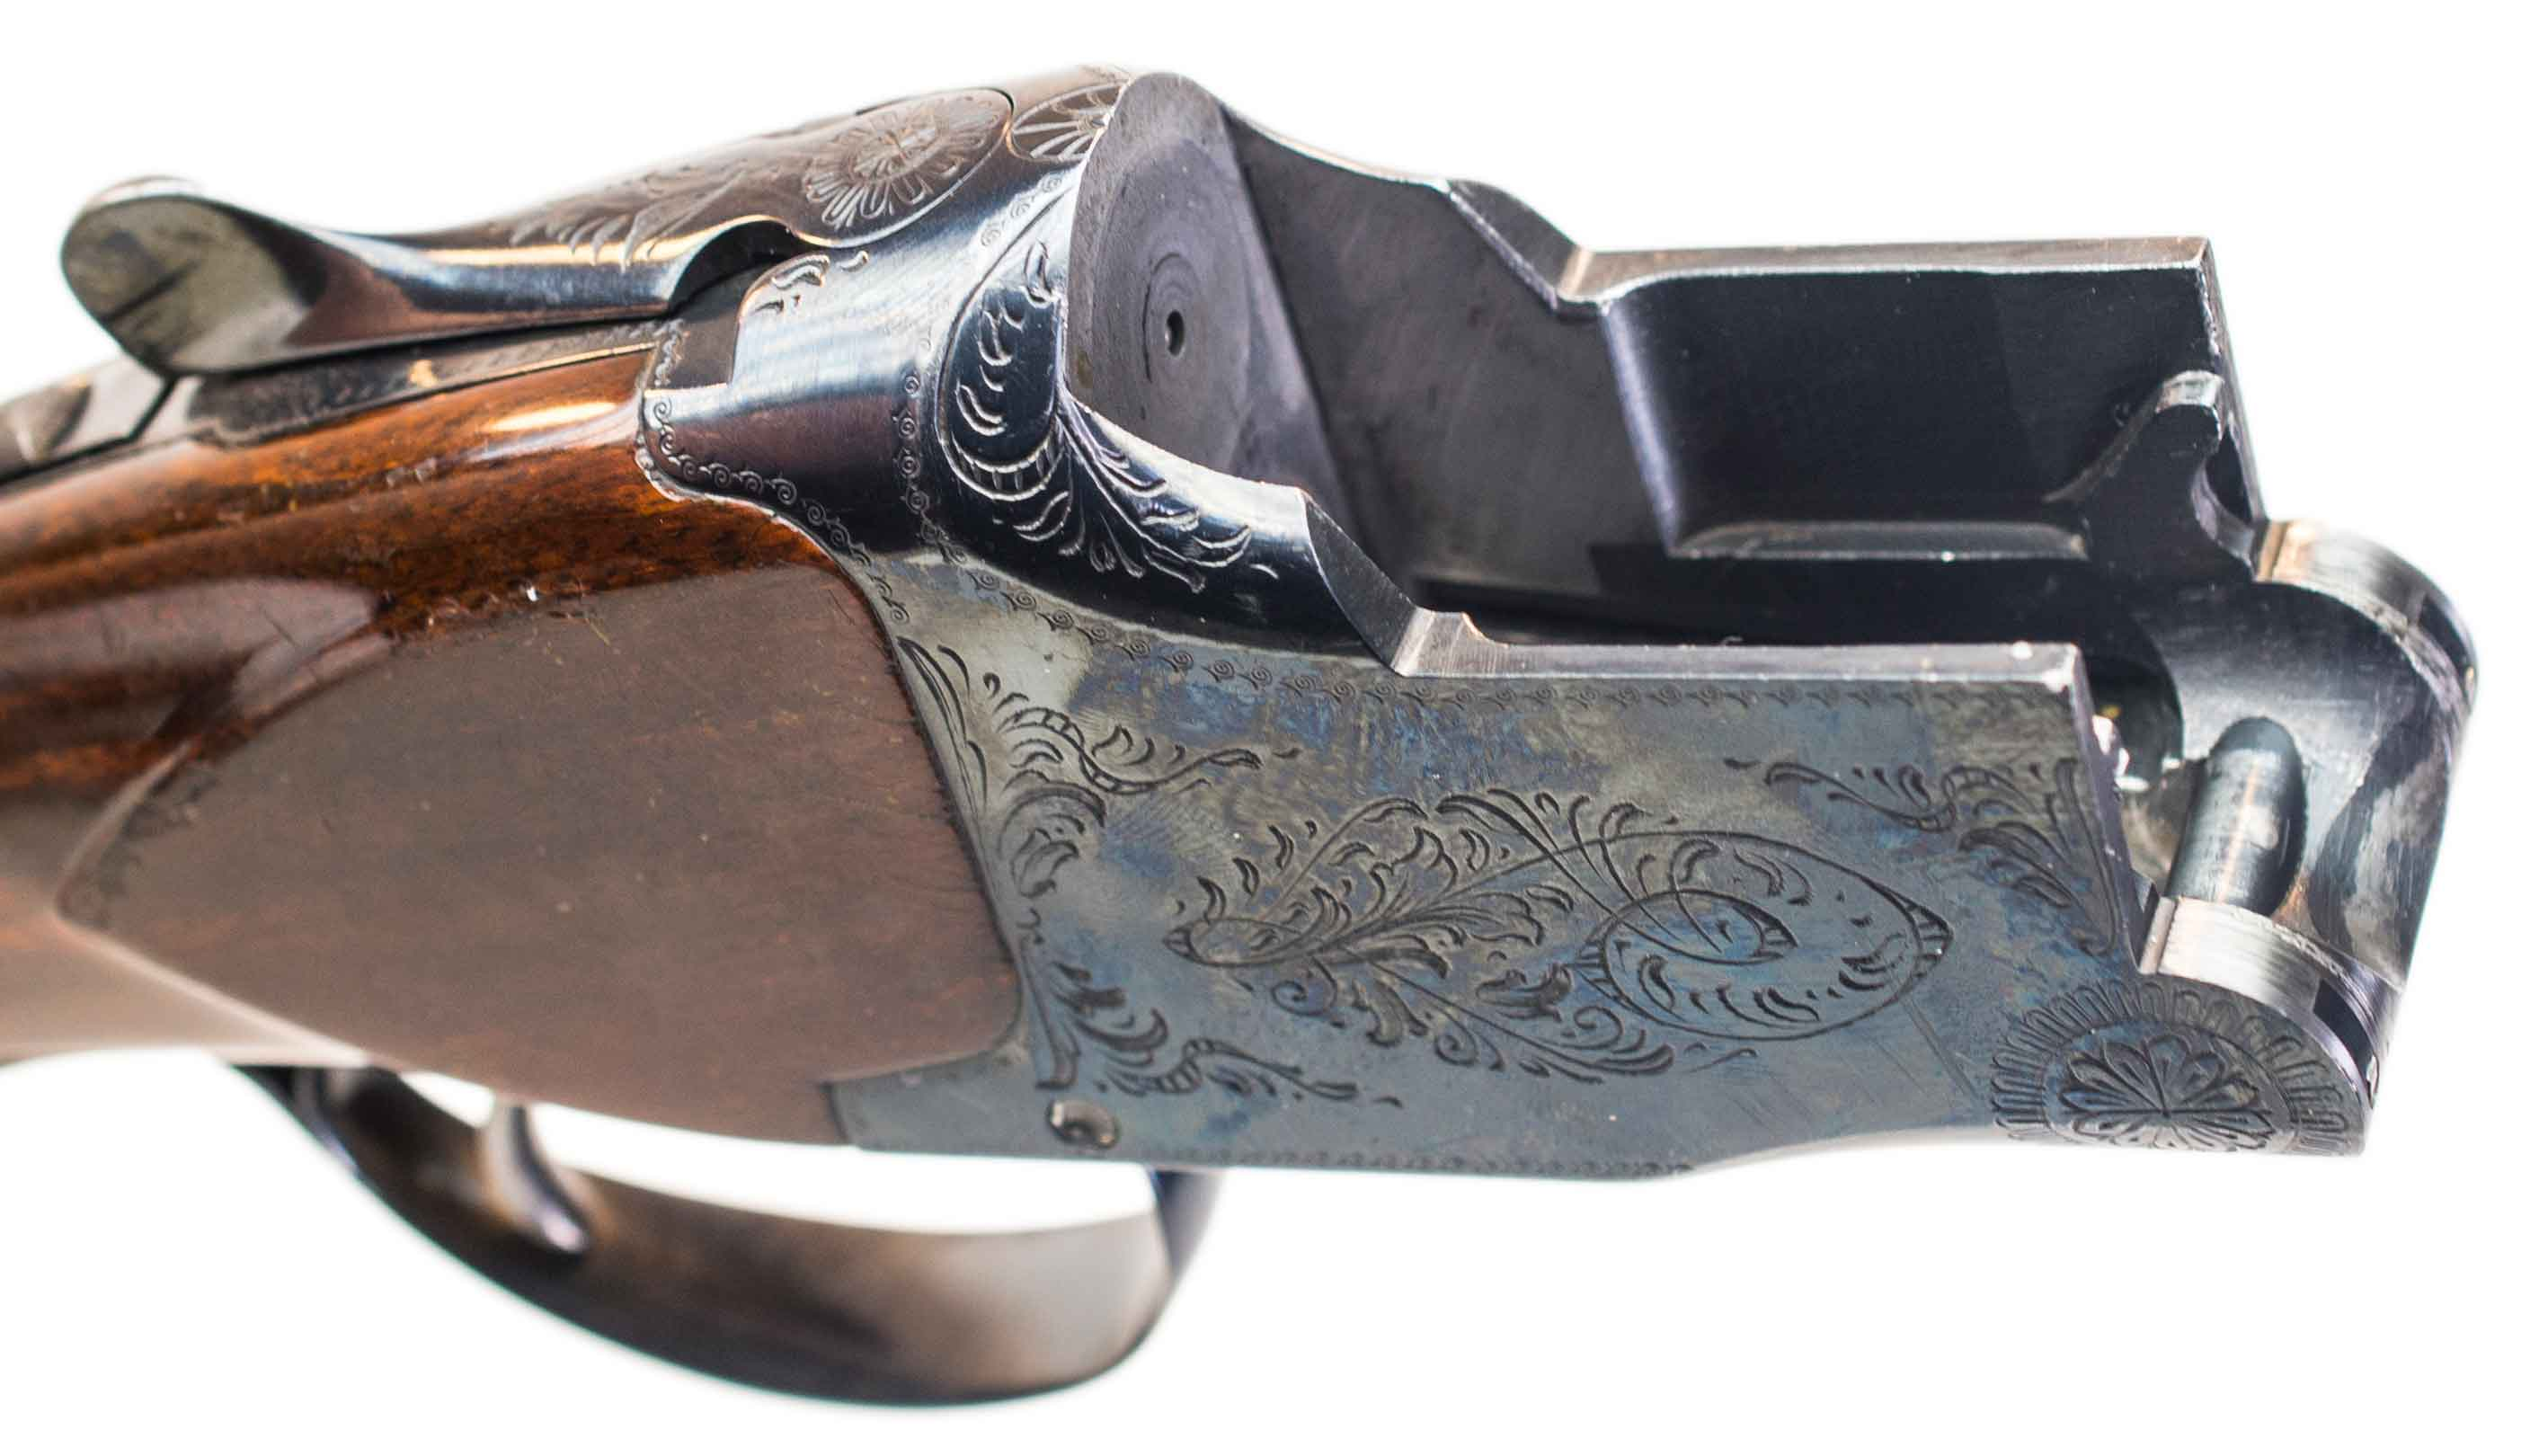 BROWNING SUPERPOSED LIGHTNING 12GA (Auction ID: 6686665, End